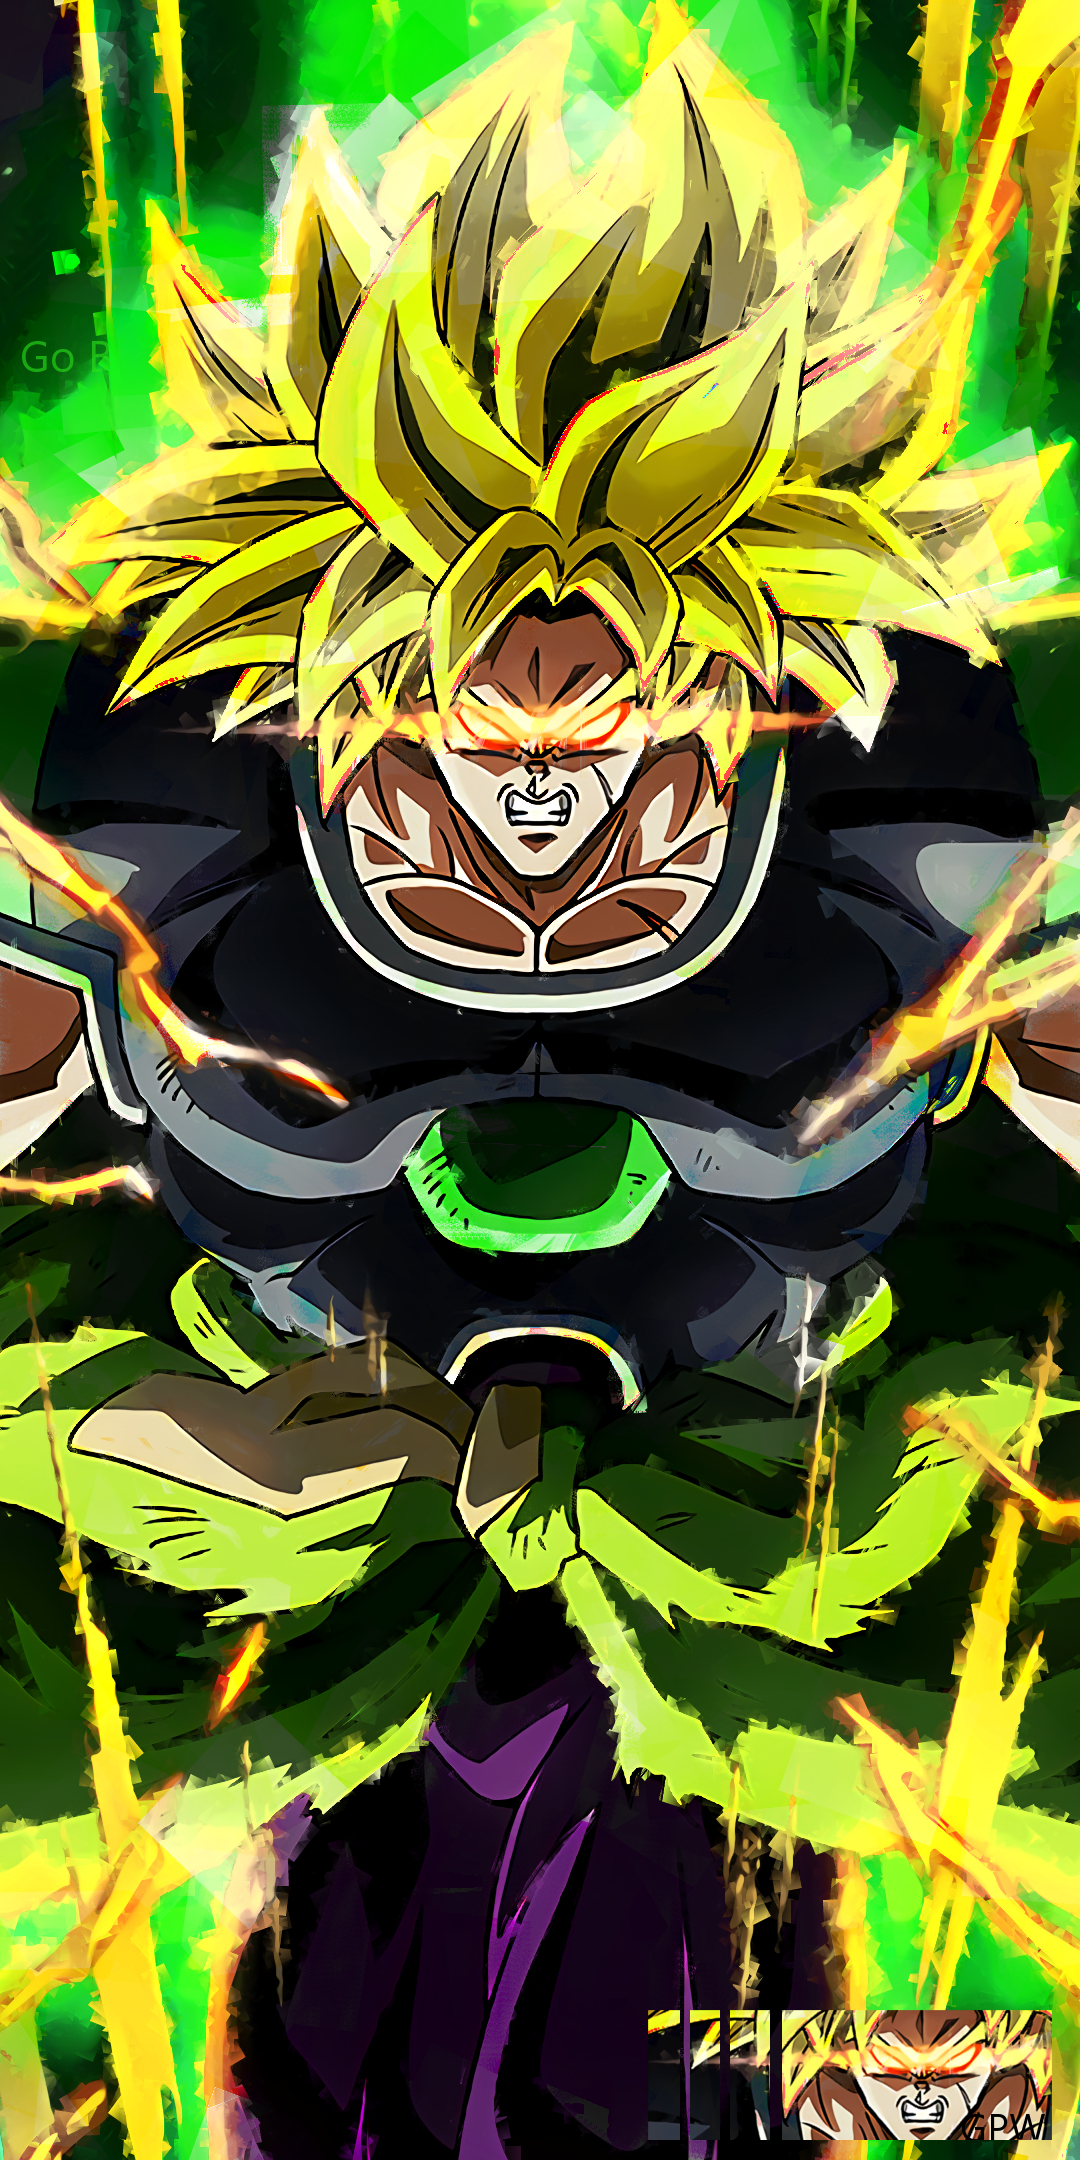 Dbs Broly Wallpapers Top Free Dbs Broly Backgrounds Wallpaperaccess